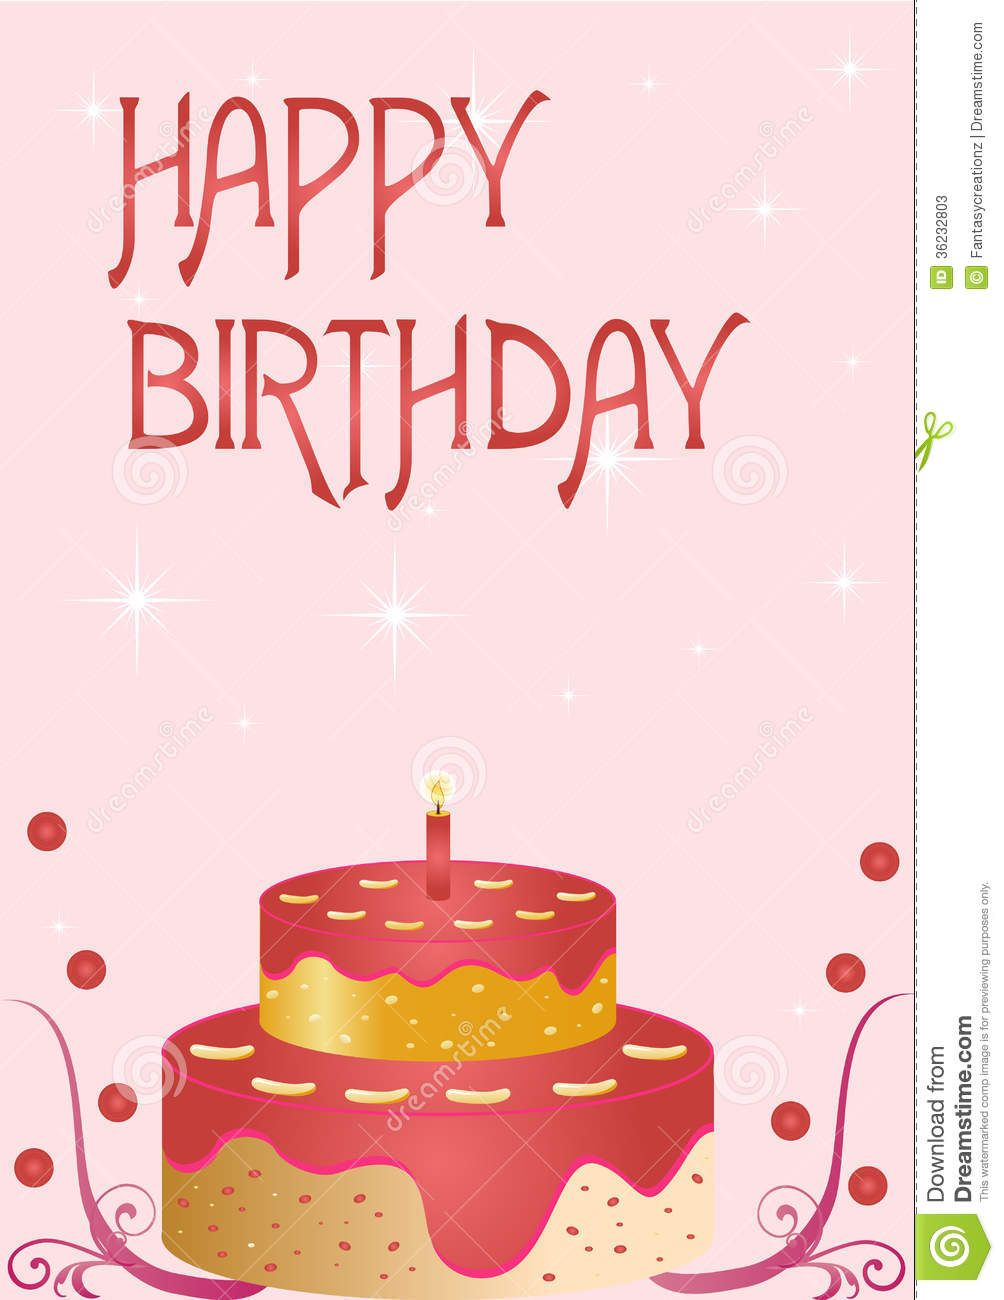 Happy birthday cards for her my birthday pinterest happy happy birthday cards for her my birthday pinterest happy birthday cards happy birthday and birthdays kristyandbryce Gallery